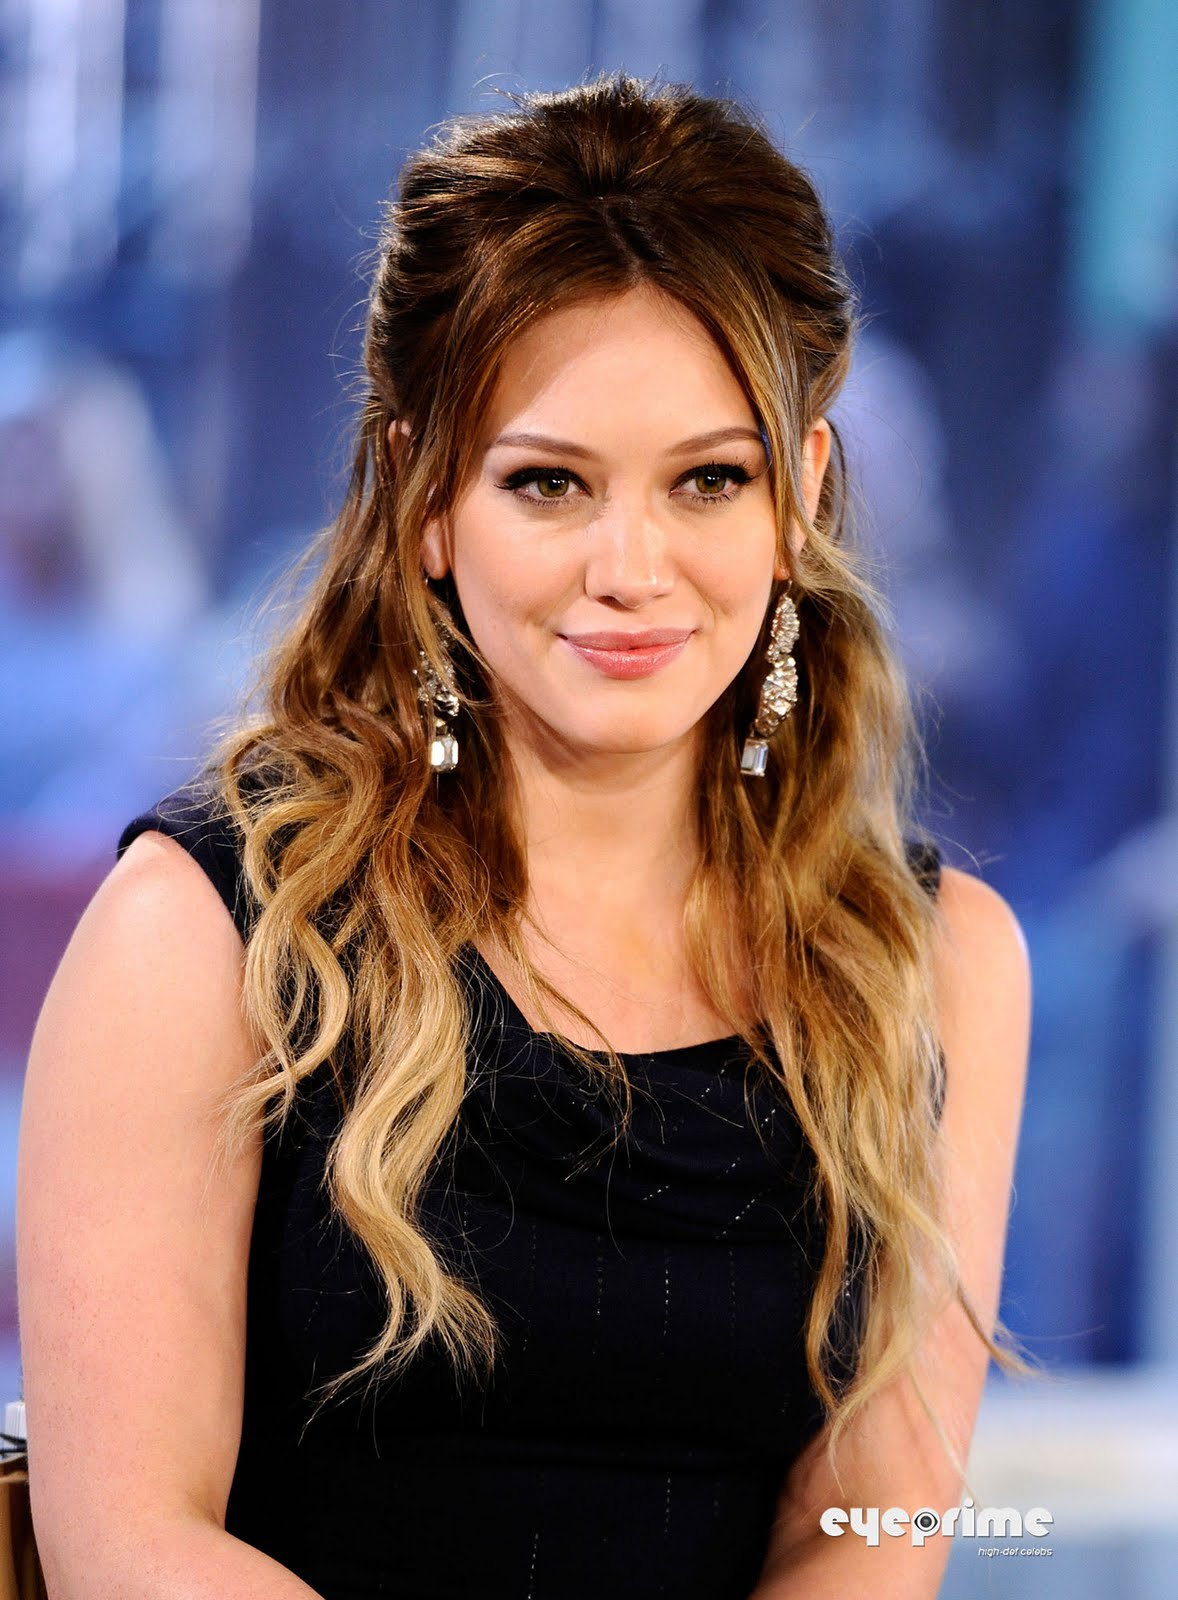 Hilary Duff Awesome wallpapers